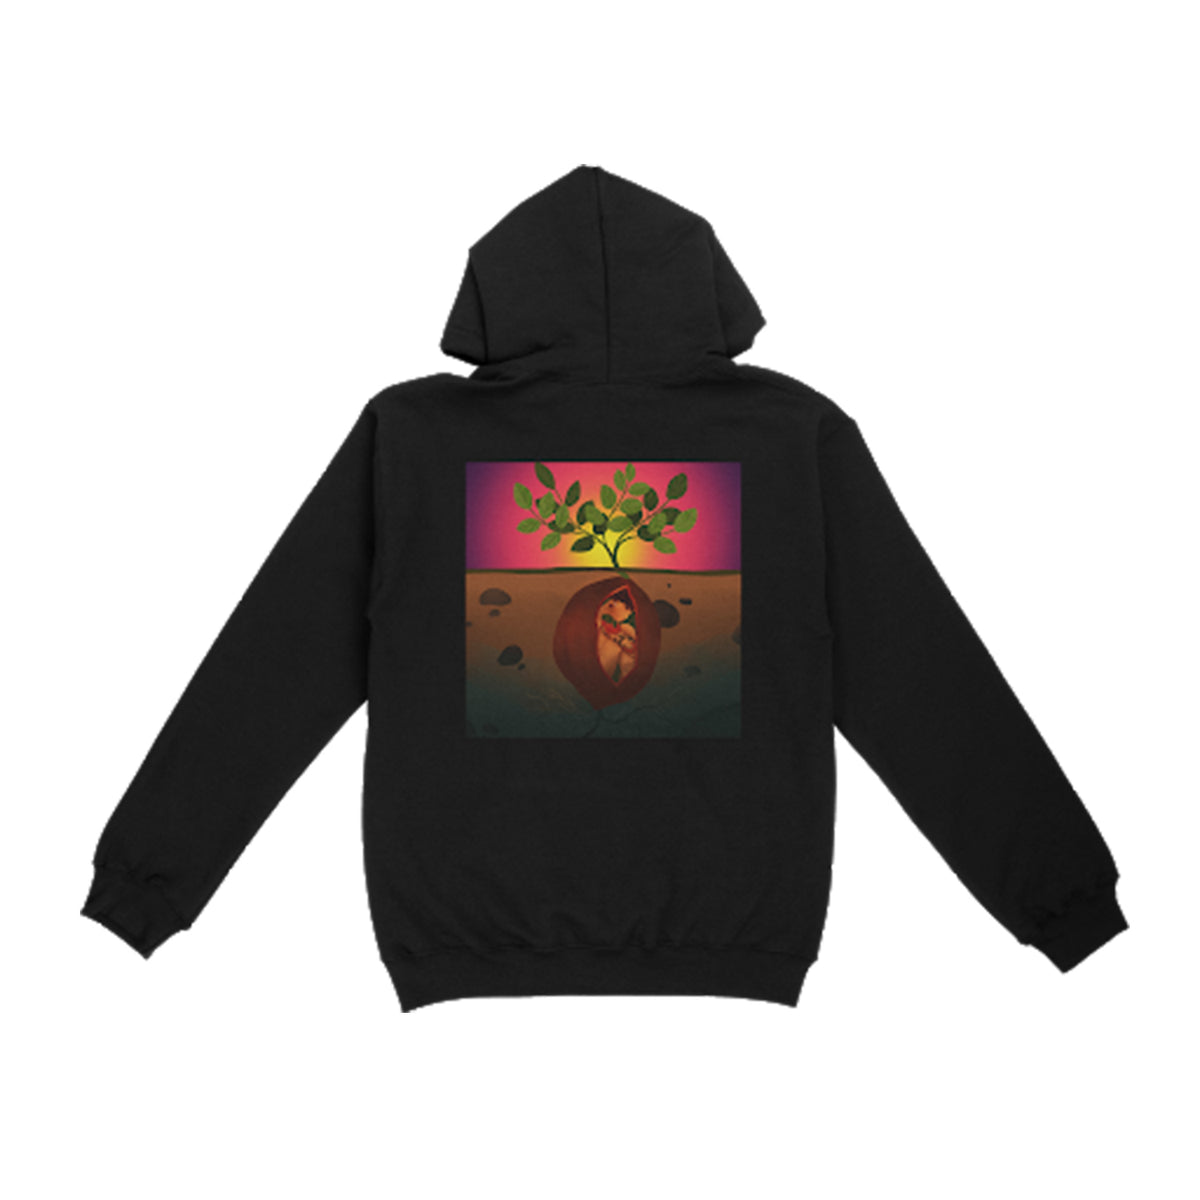 Emerge & See Black Hoodie + Download